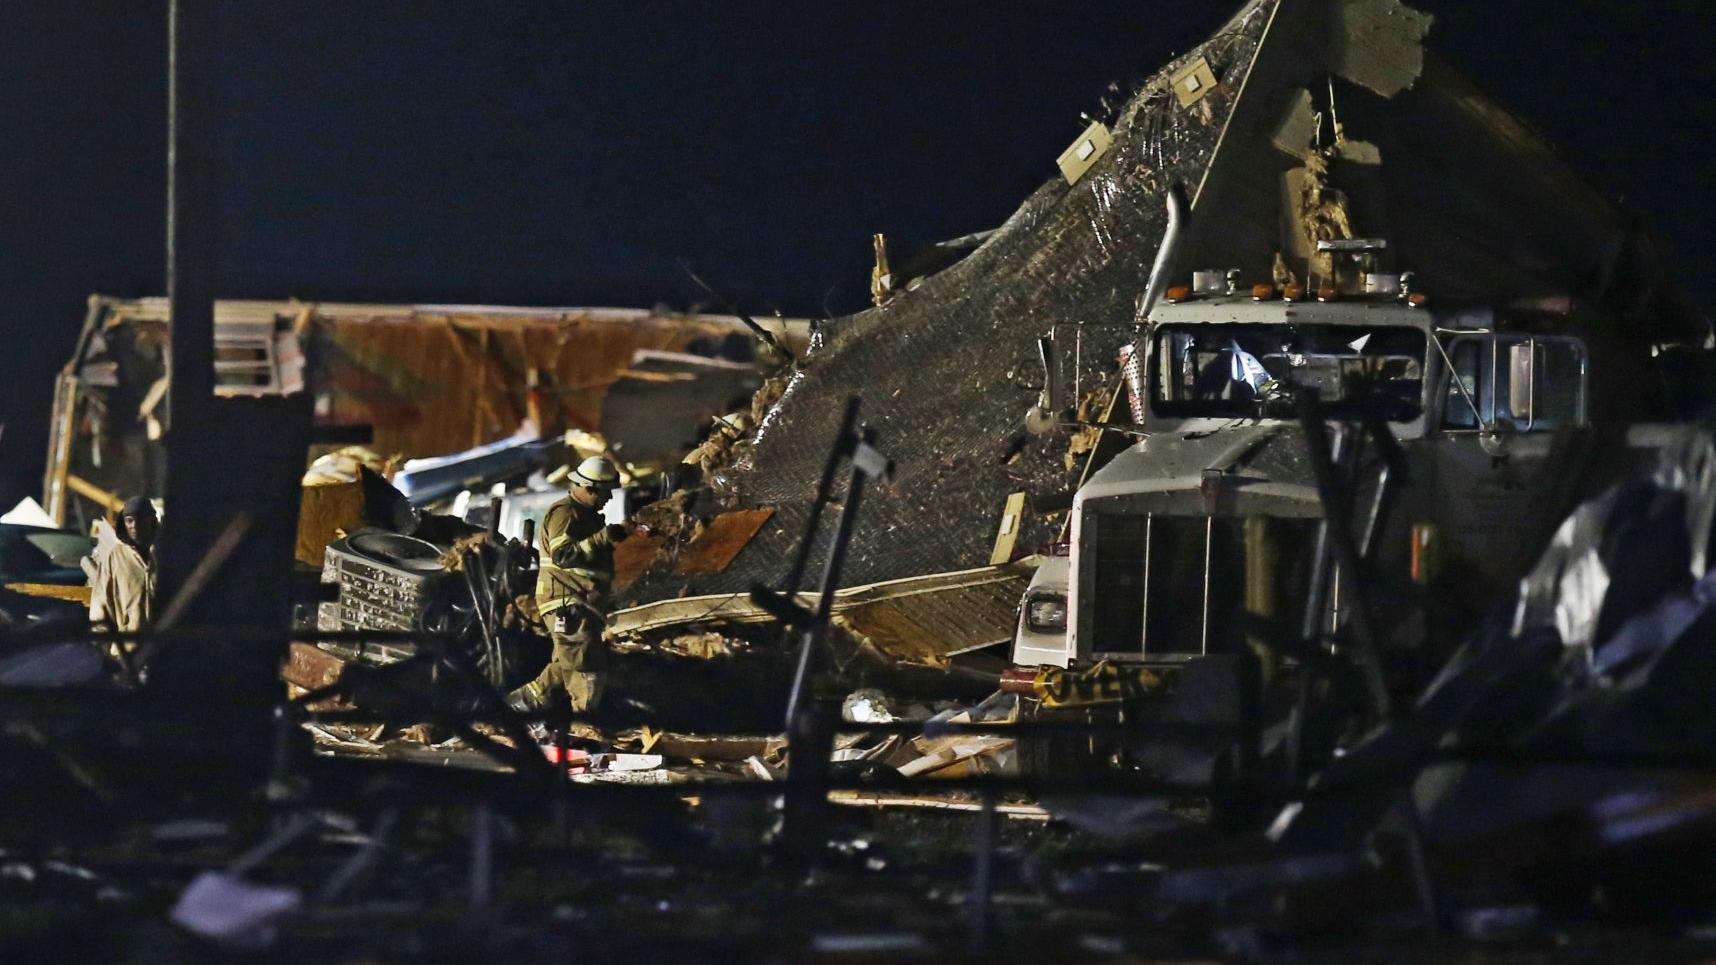 Photos: At least 2 dead after likely tornado roars through Oklahoma town